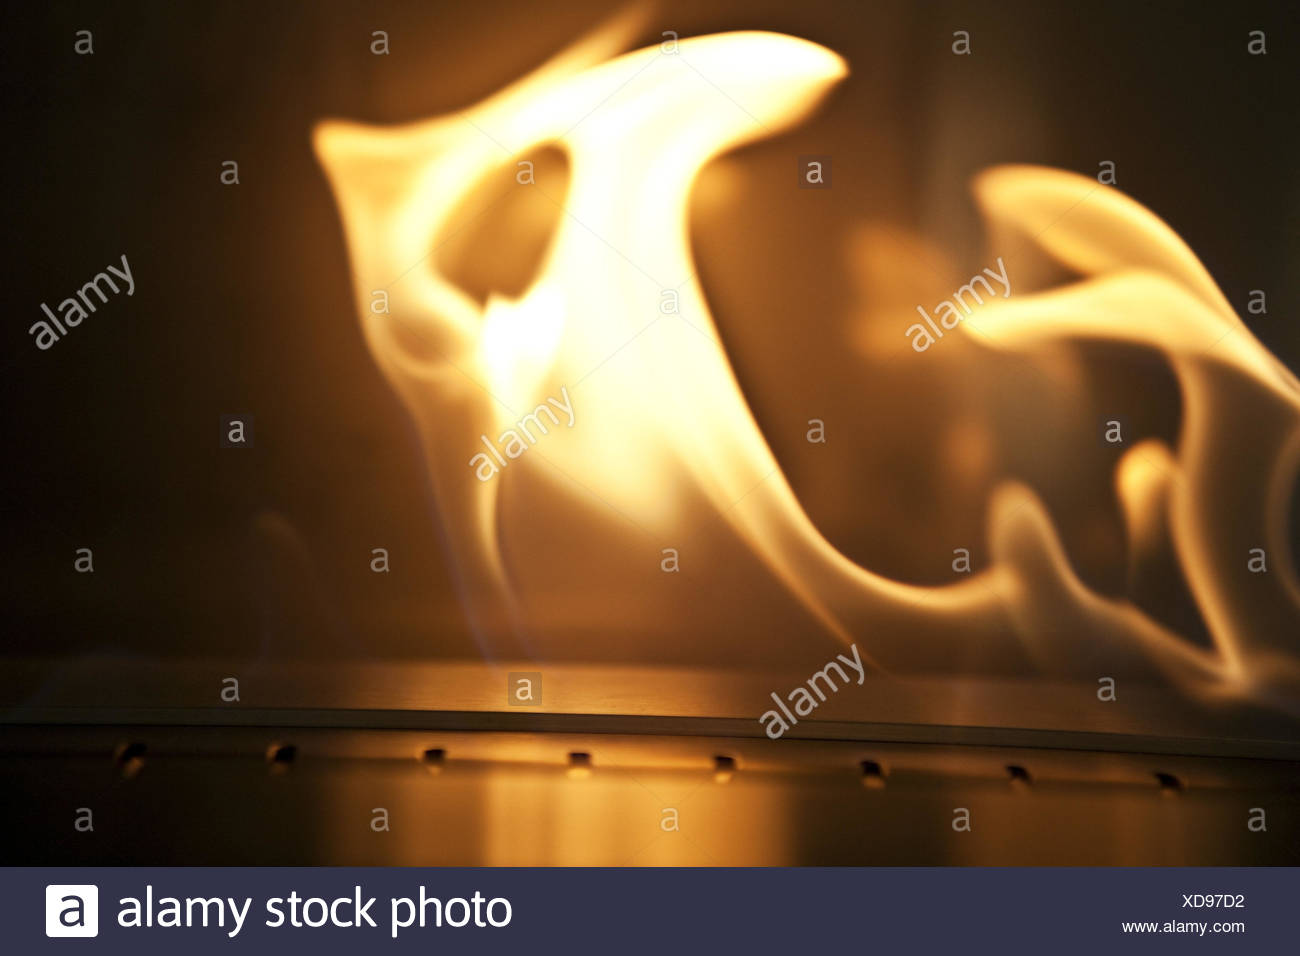 Fire, flames, - Stock Image